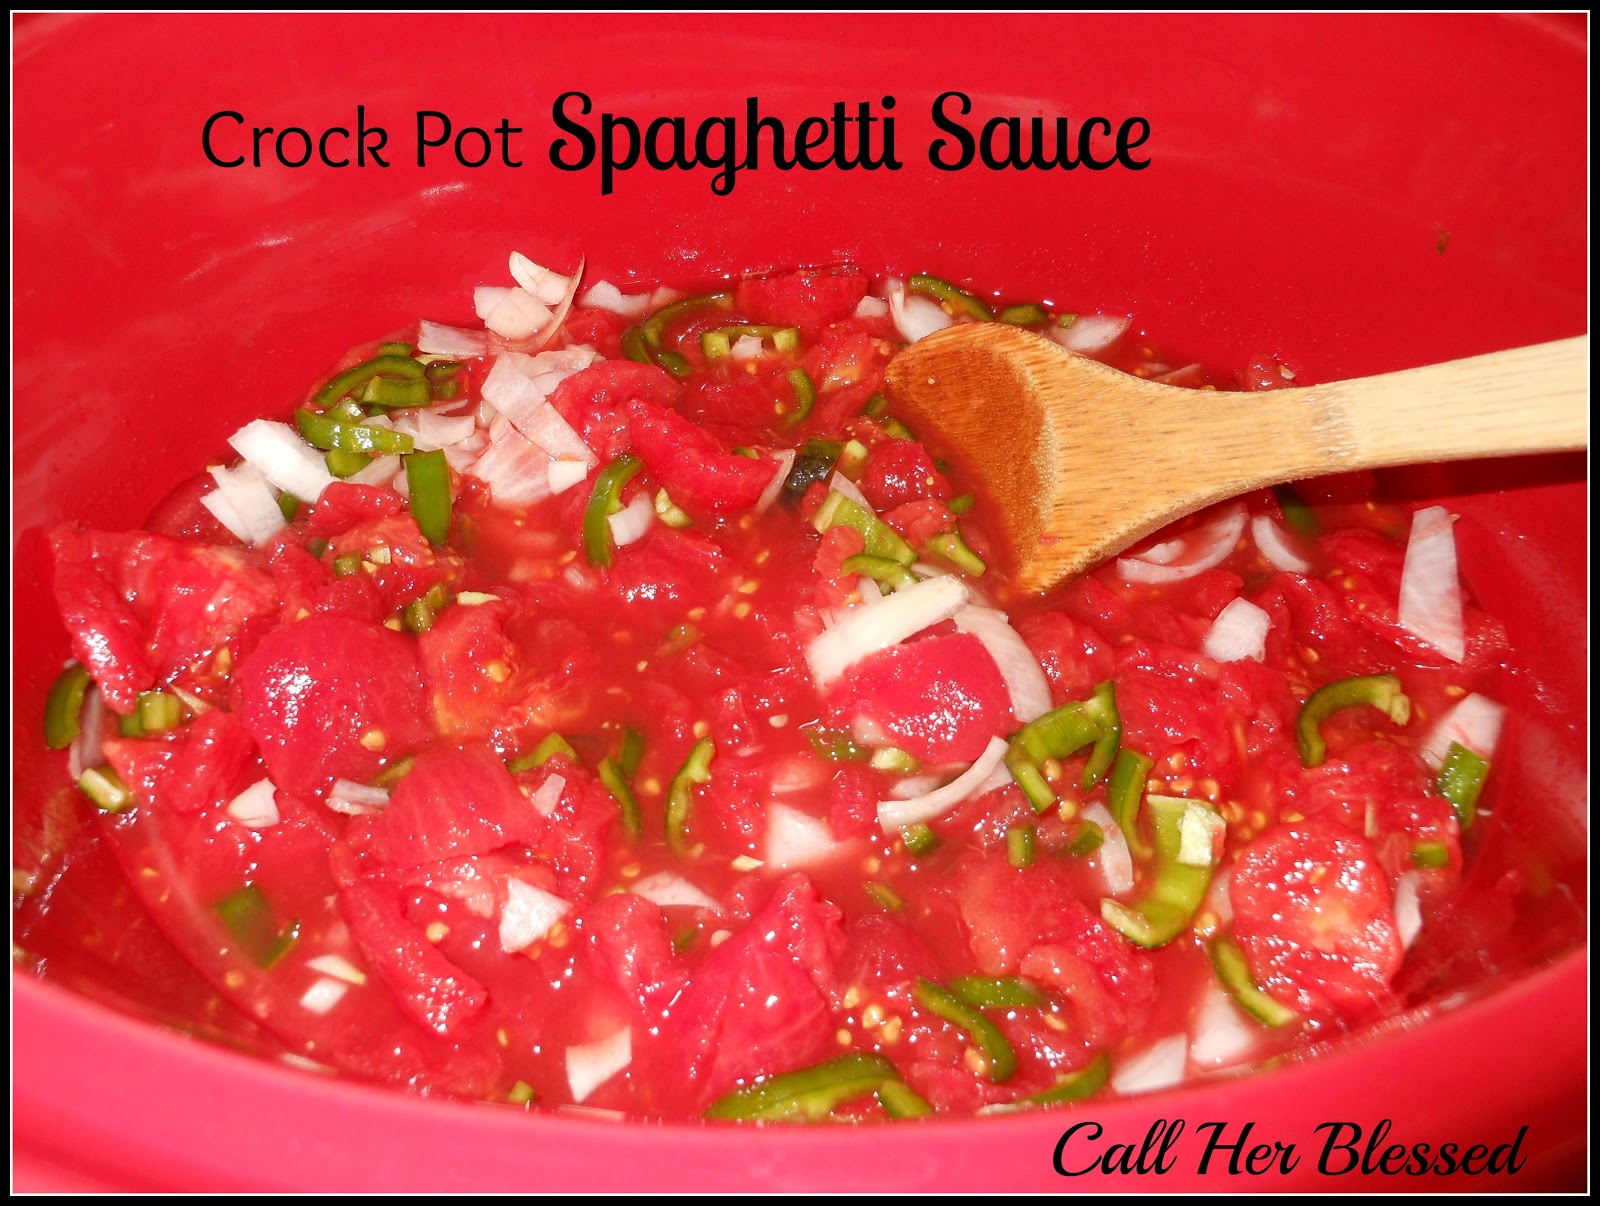 Call Her Blessed: Crock Pot Spaghetti Sauce